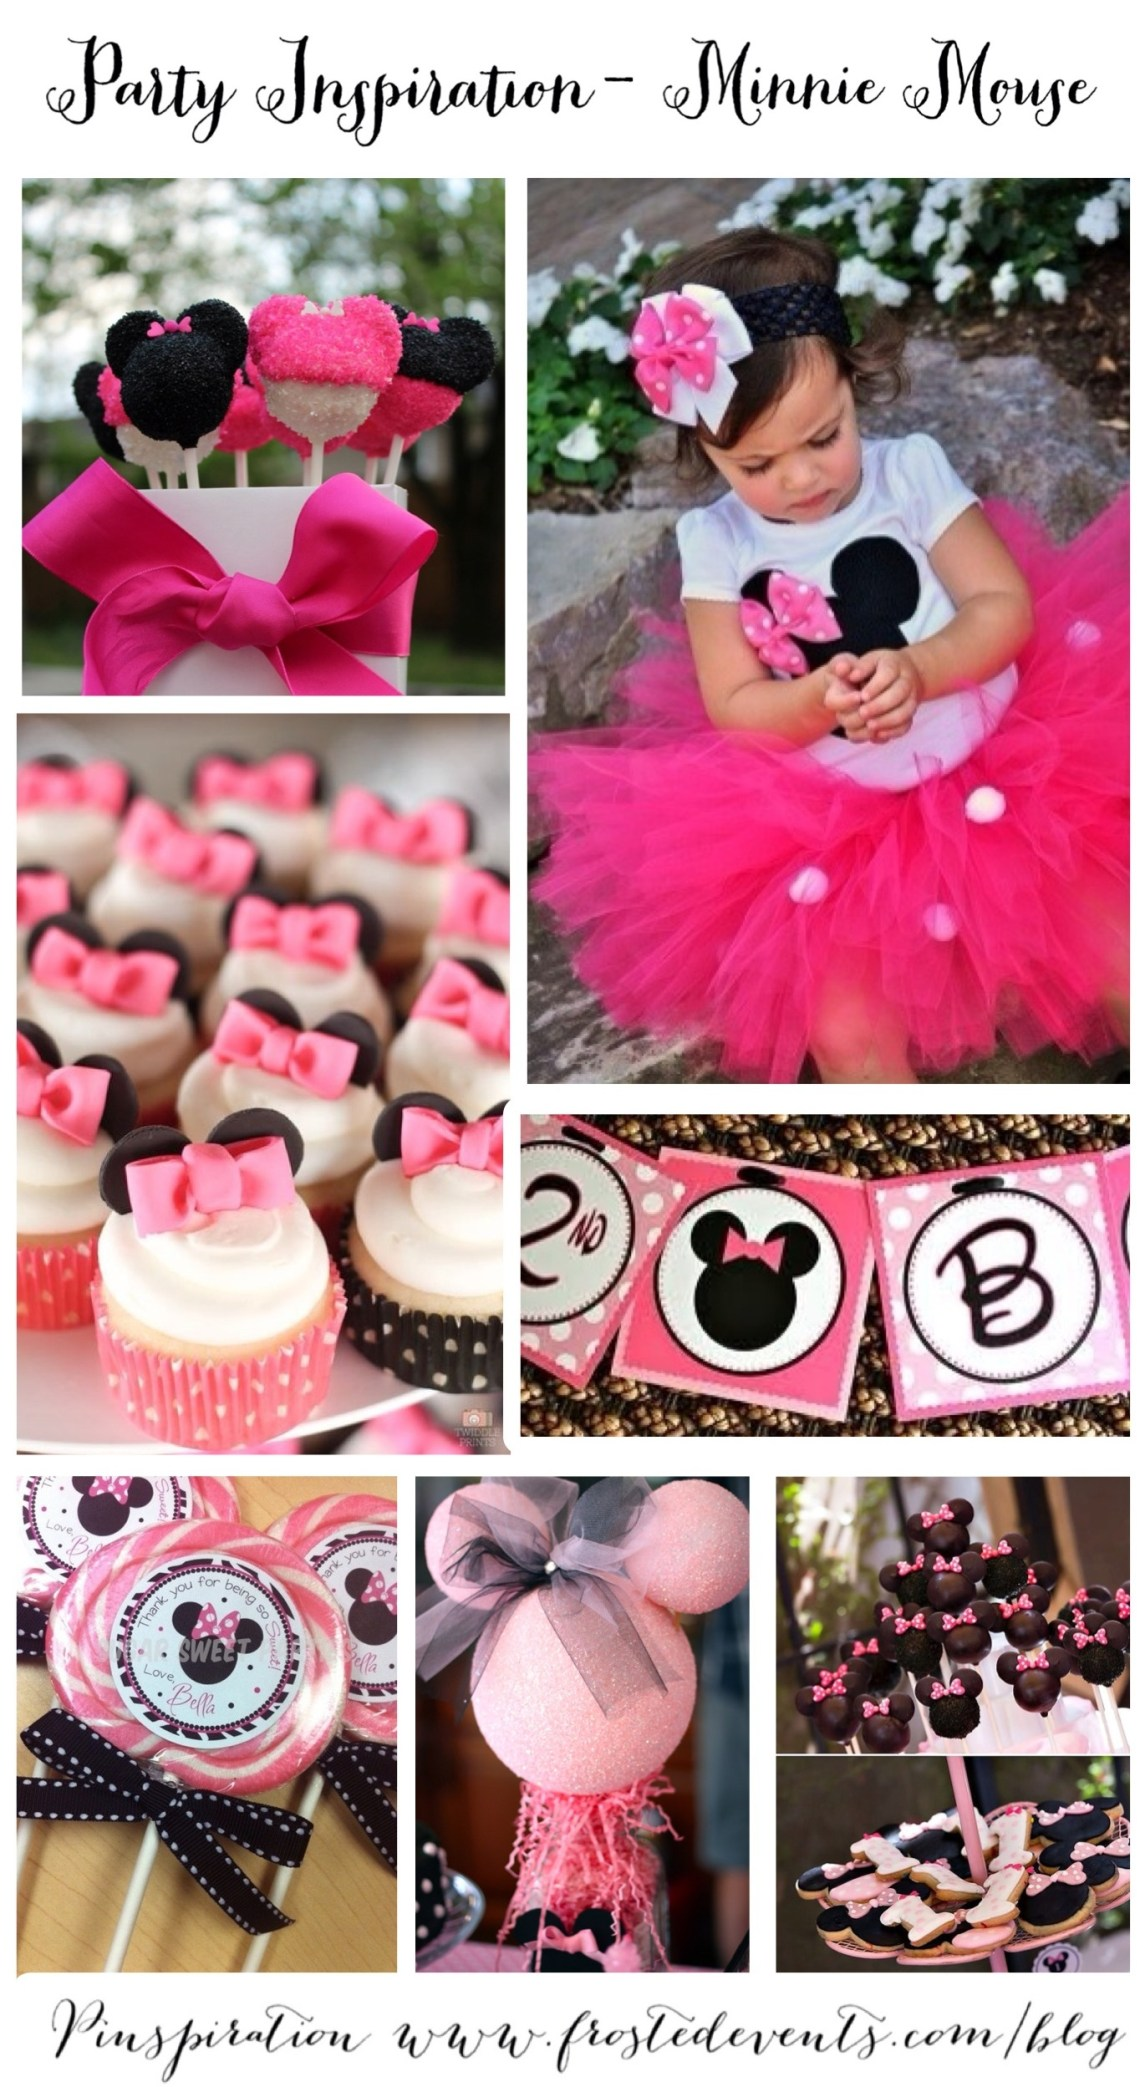 Minnie Mouse Party Ideas & Inspiration Birthday Party Planner Guide www.frostedevents.com